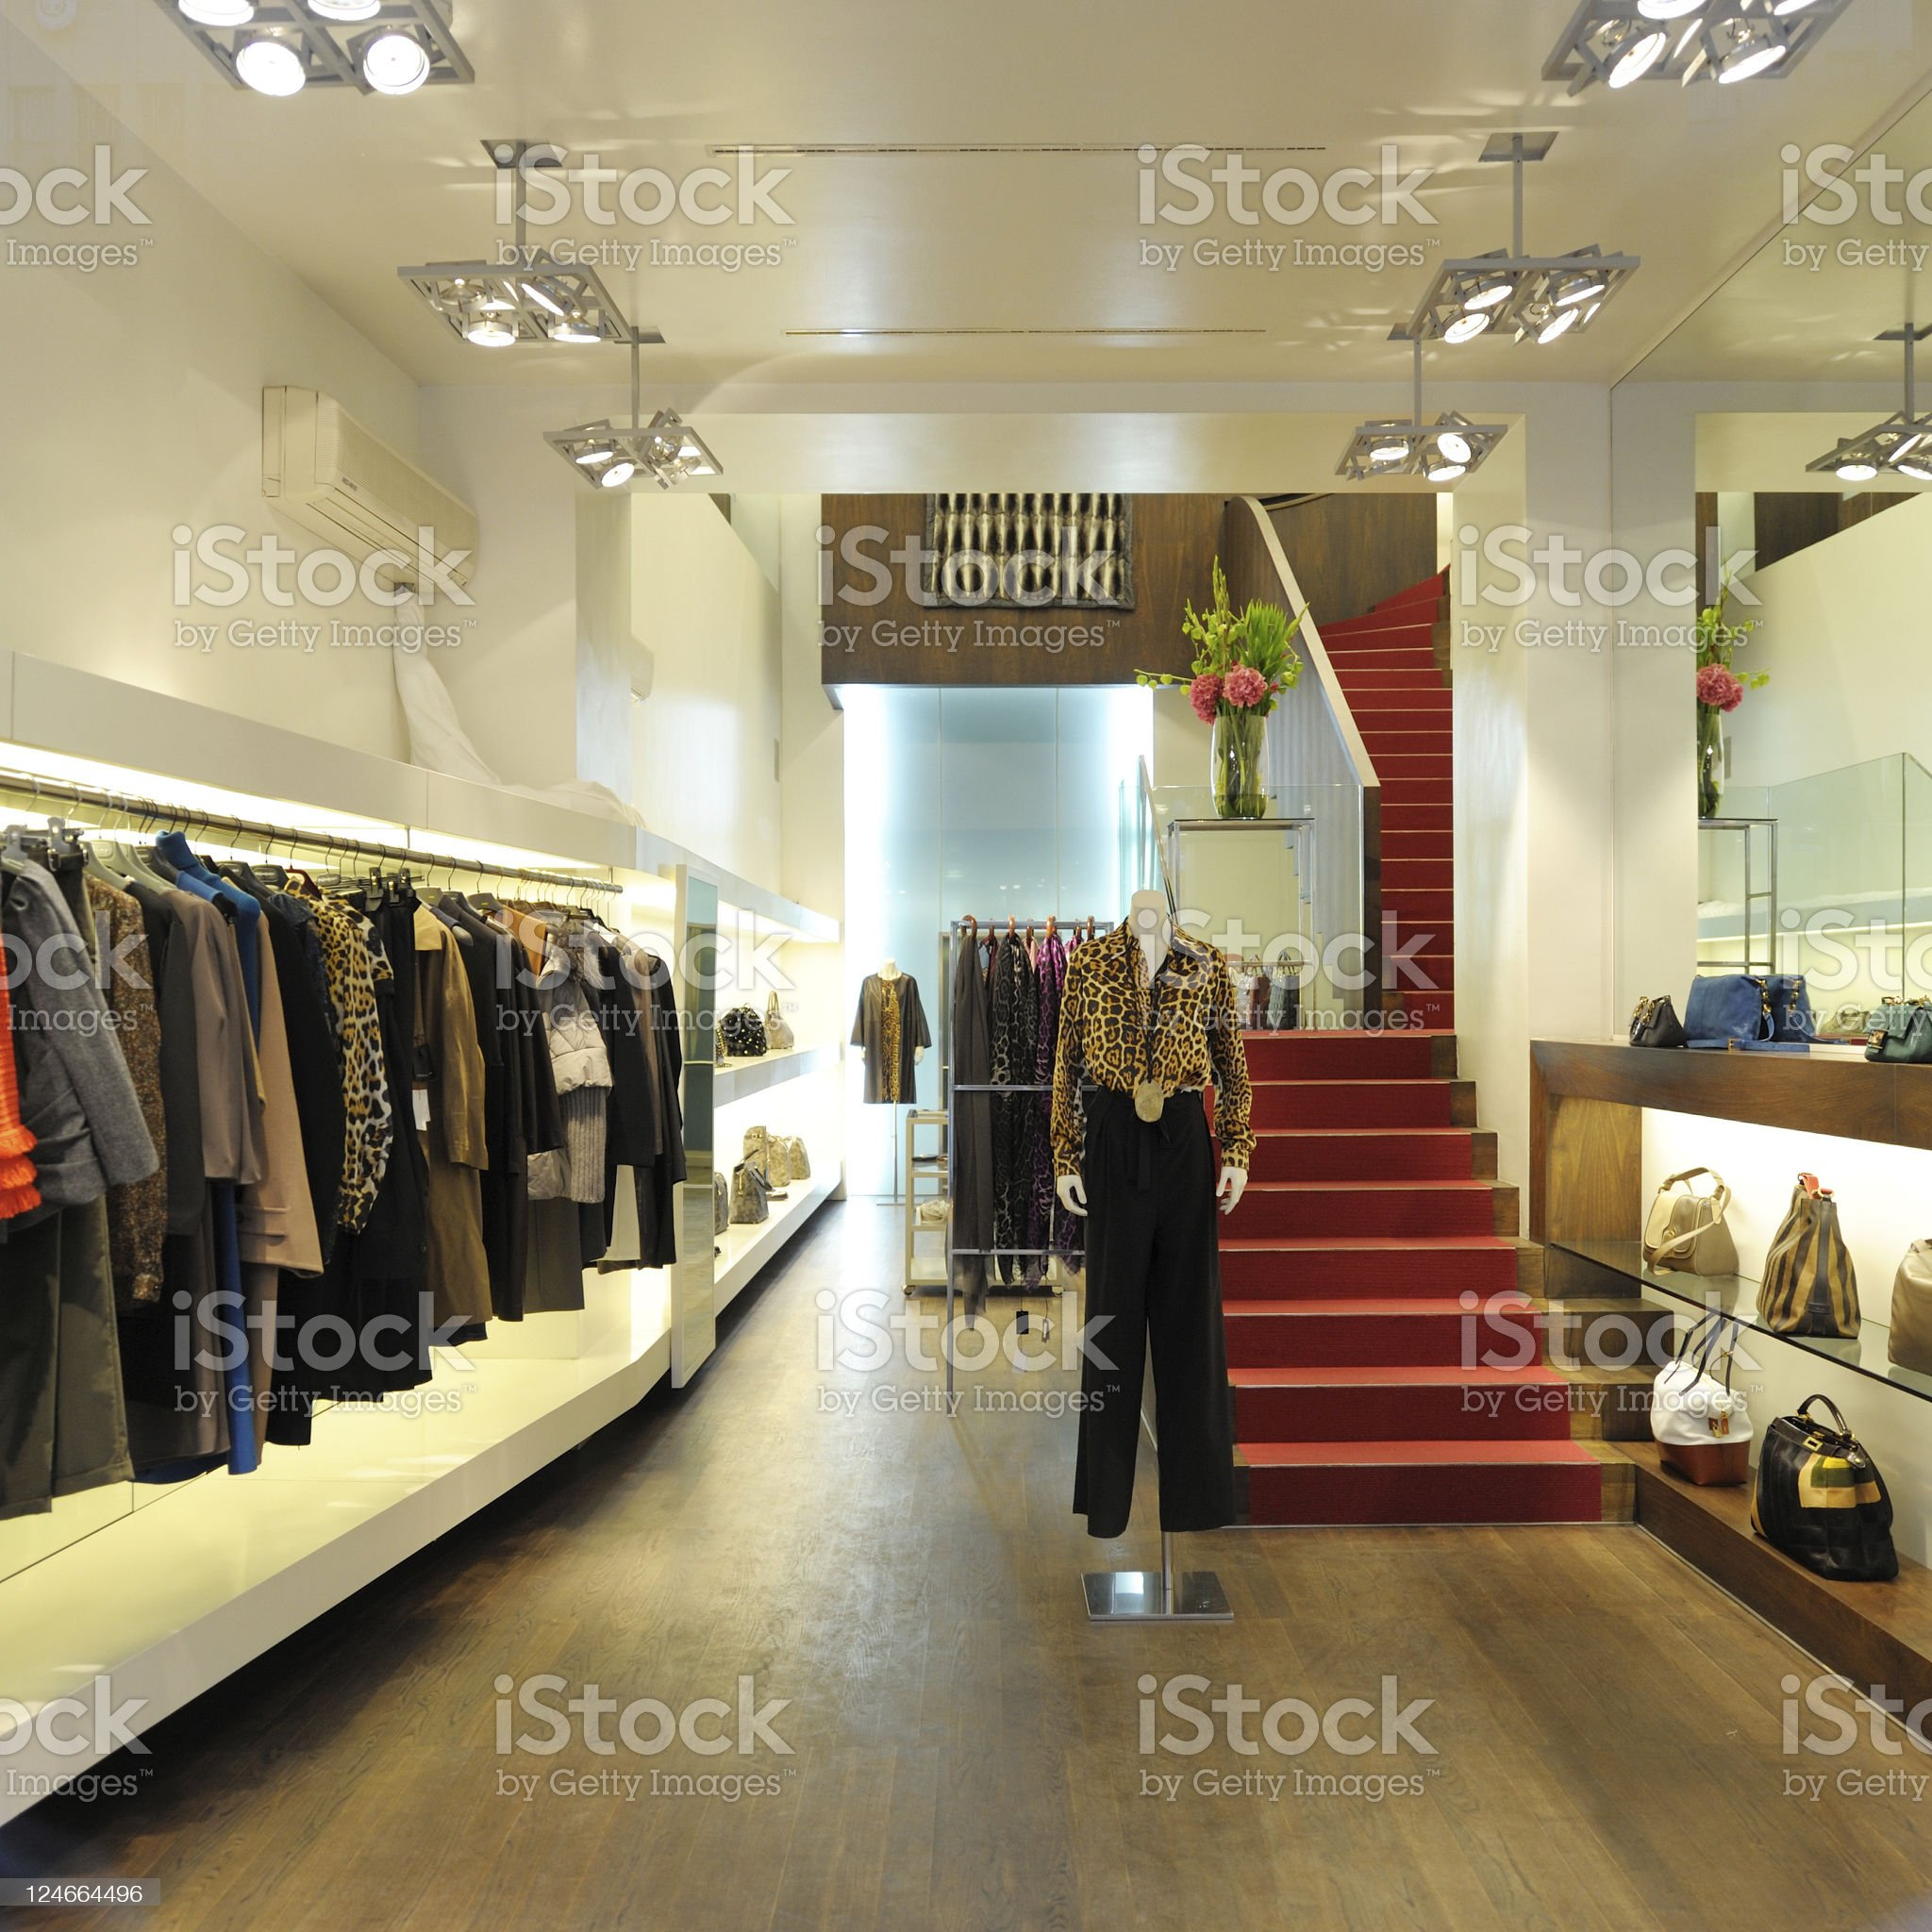 Interior of a modern boutique store royalty-free stock photo